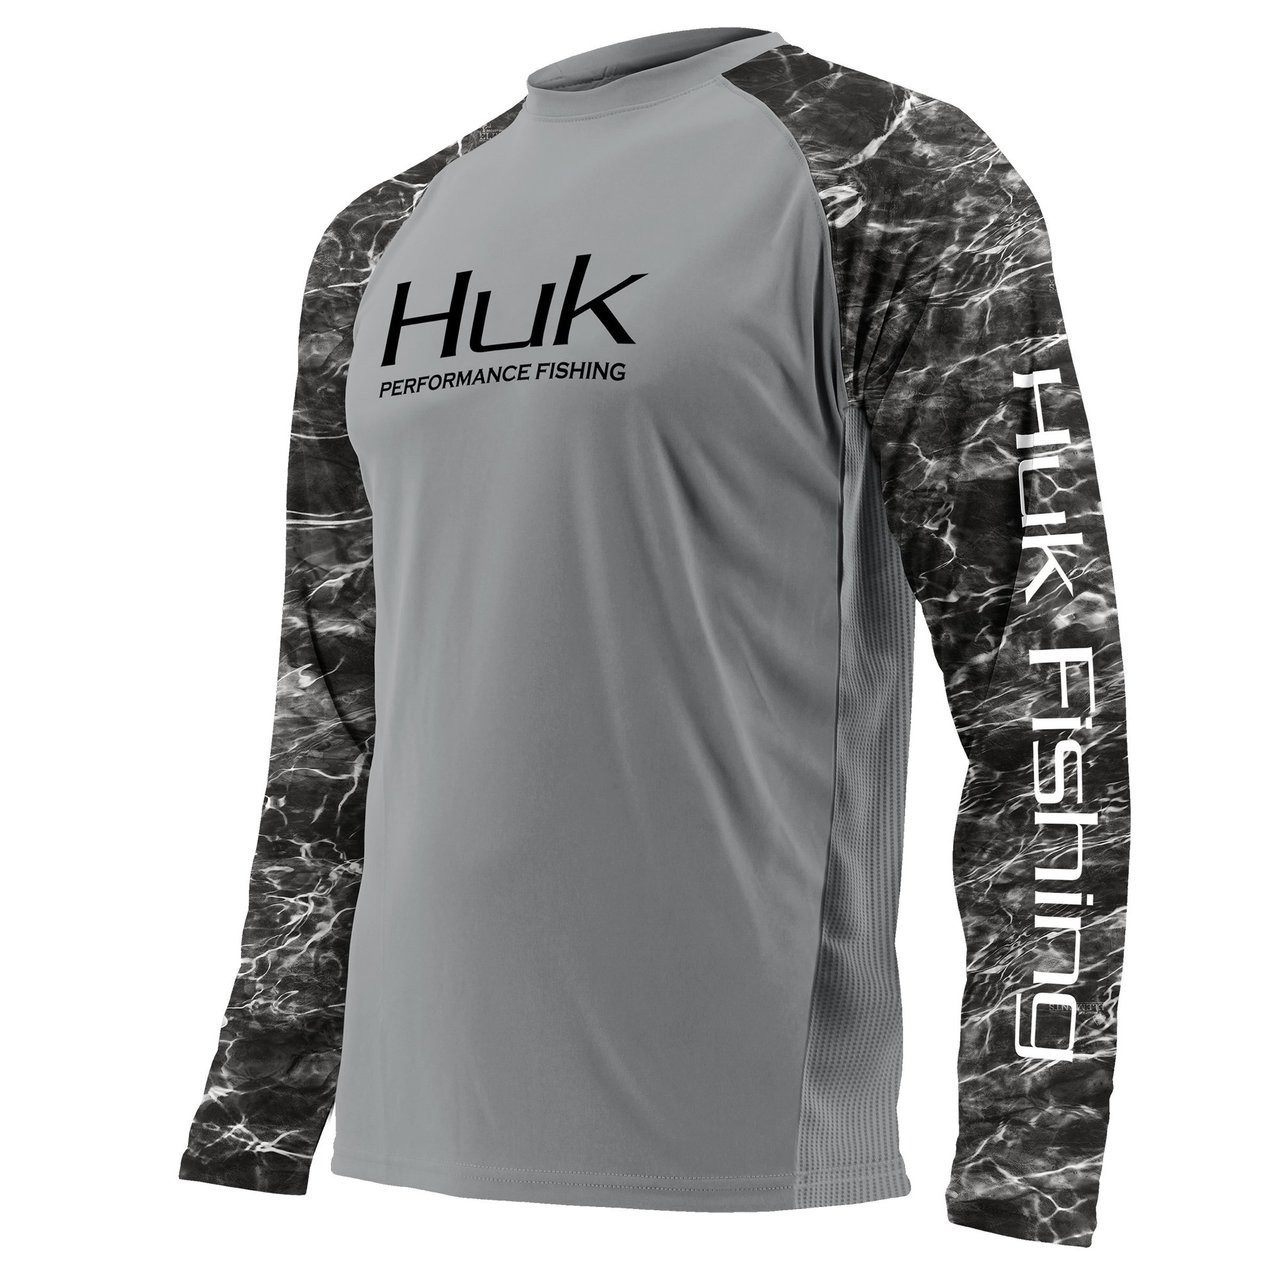 Huk Men's Double Header Raglan Vented Long Sleeve Performance Shirt H1200136